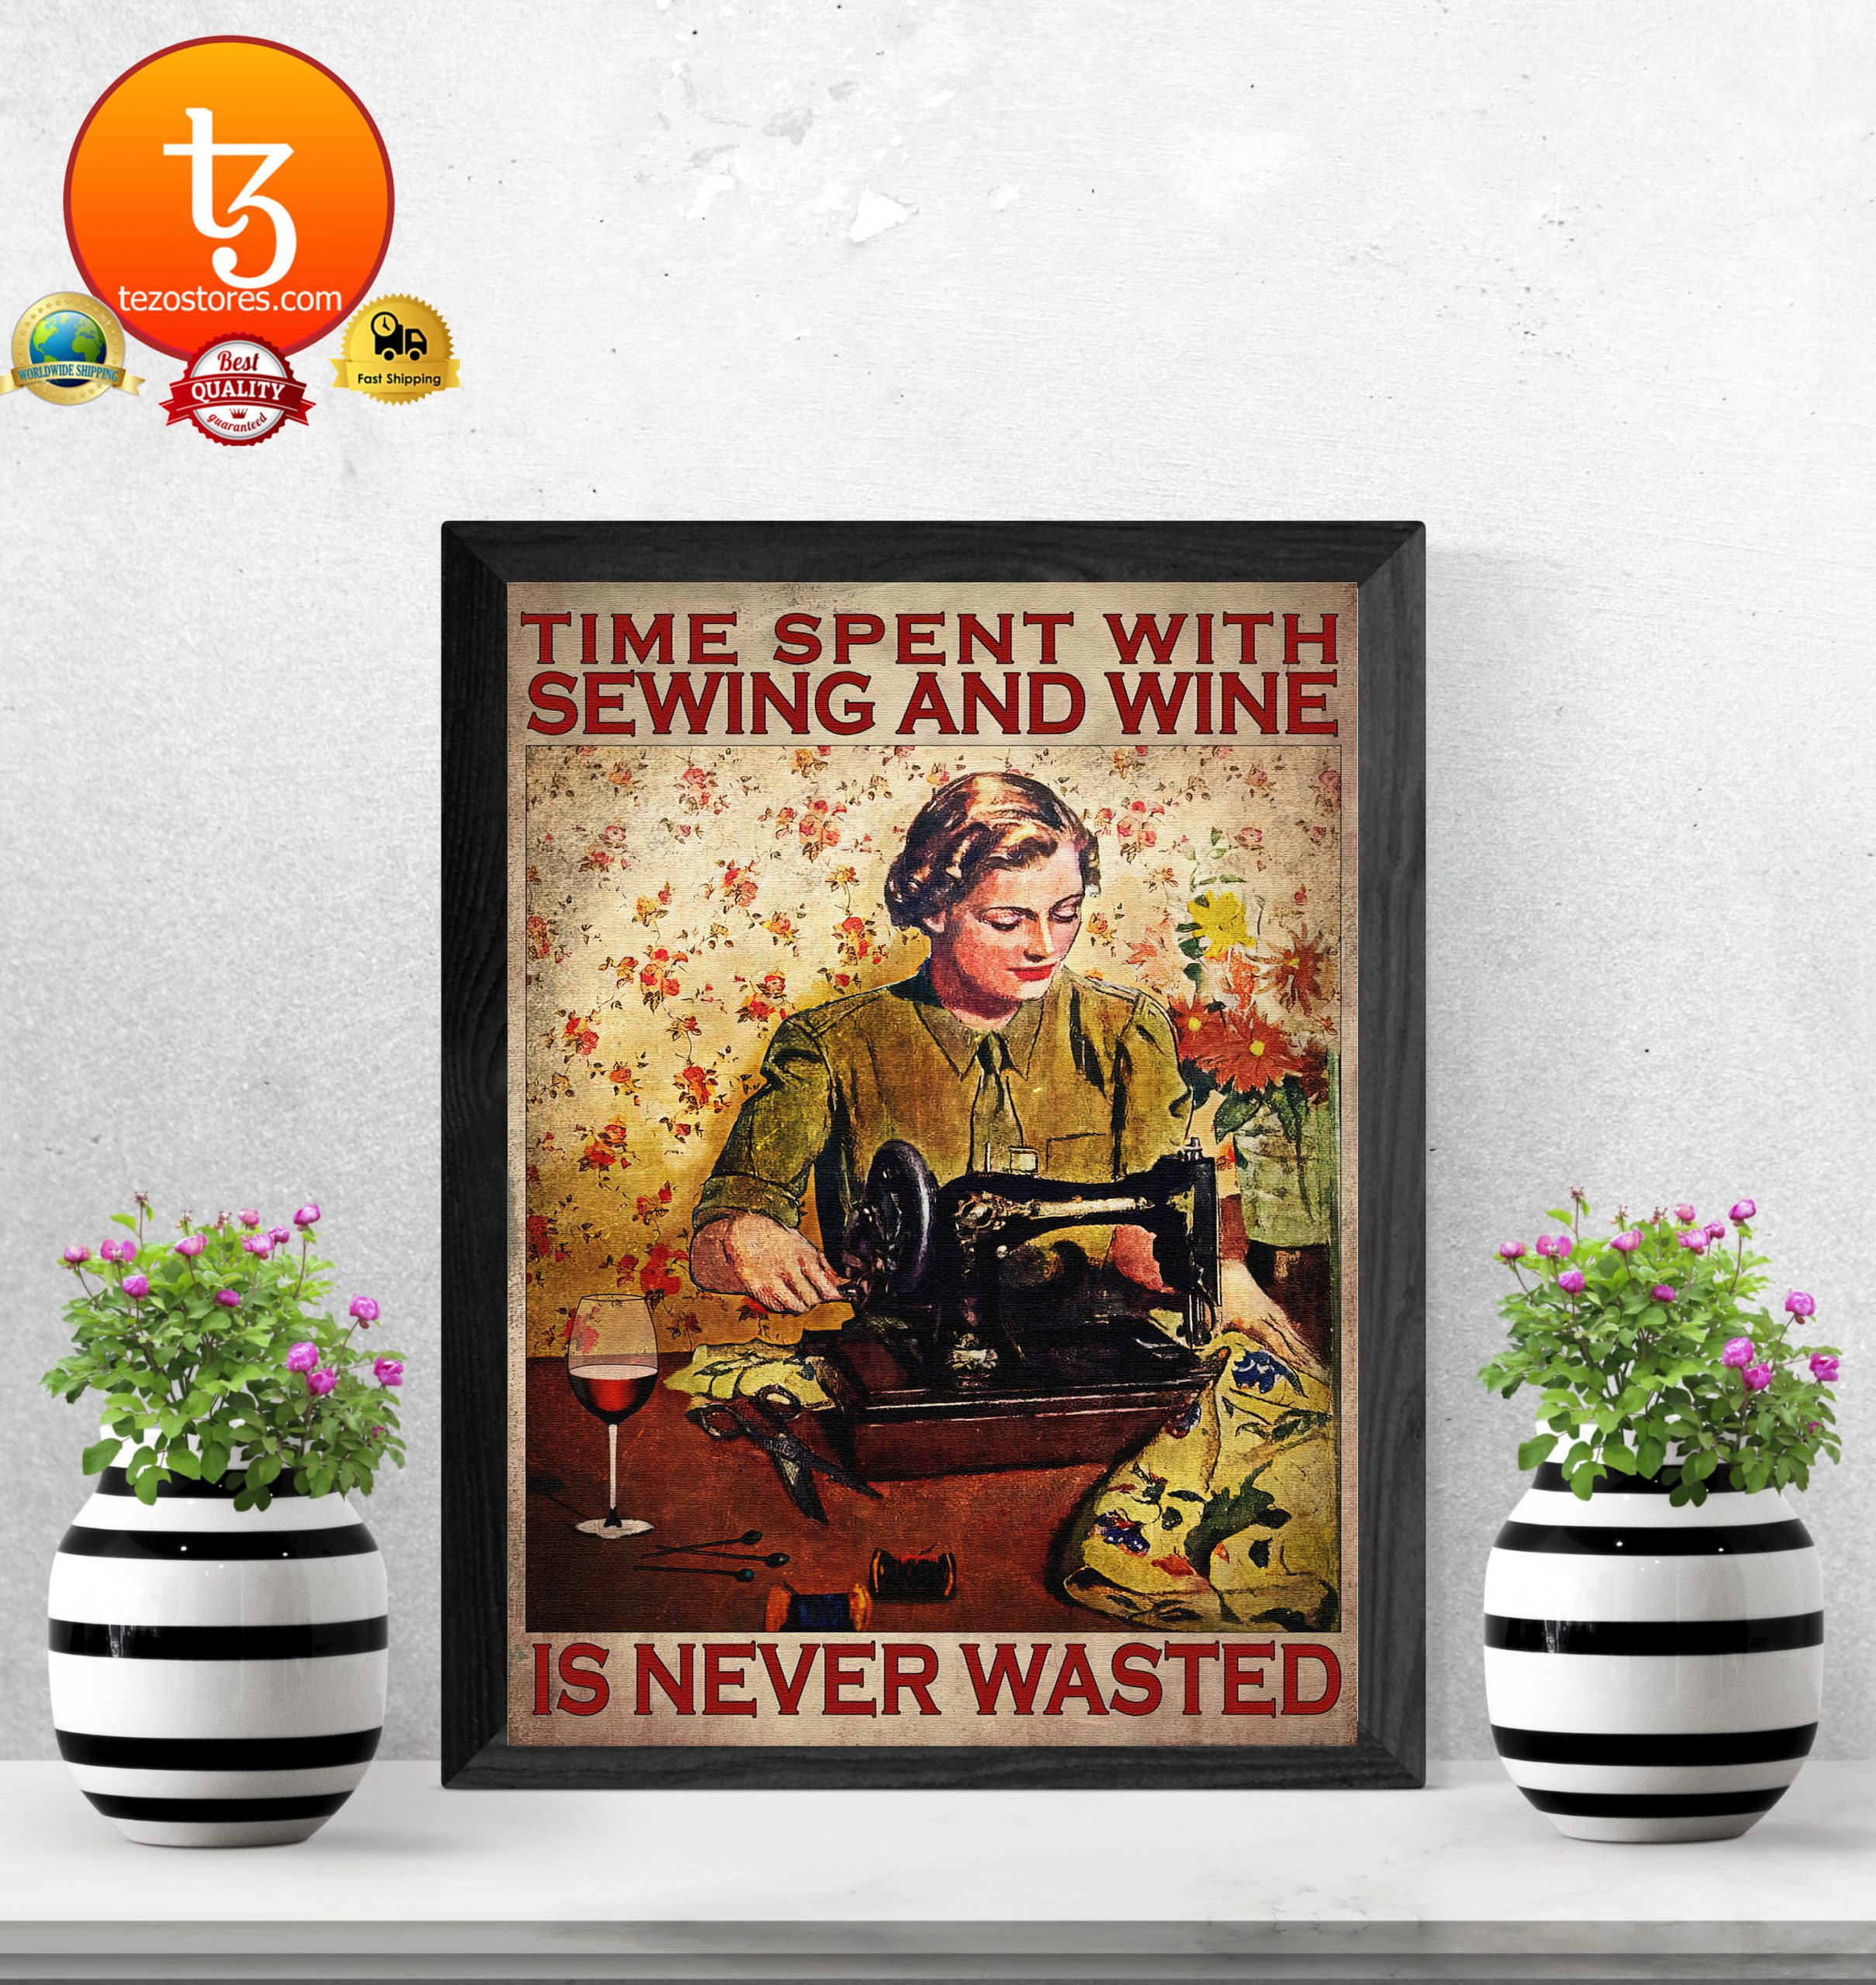 Time spent with sewing and wine is never wasted poster3